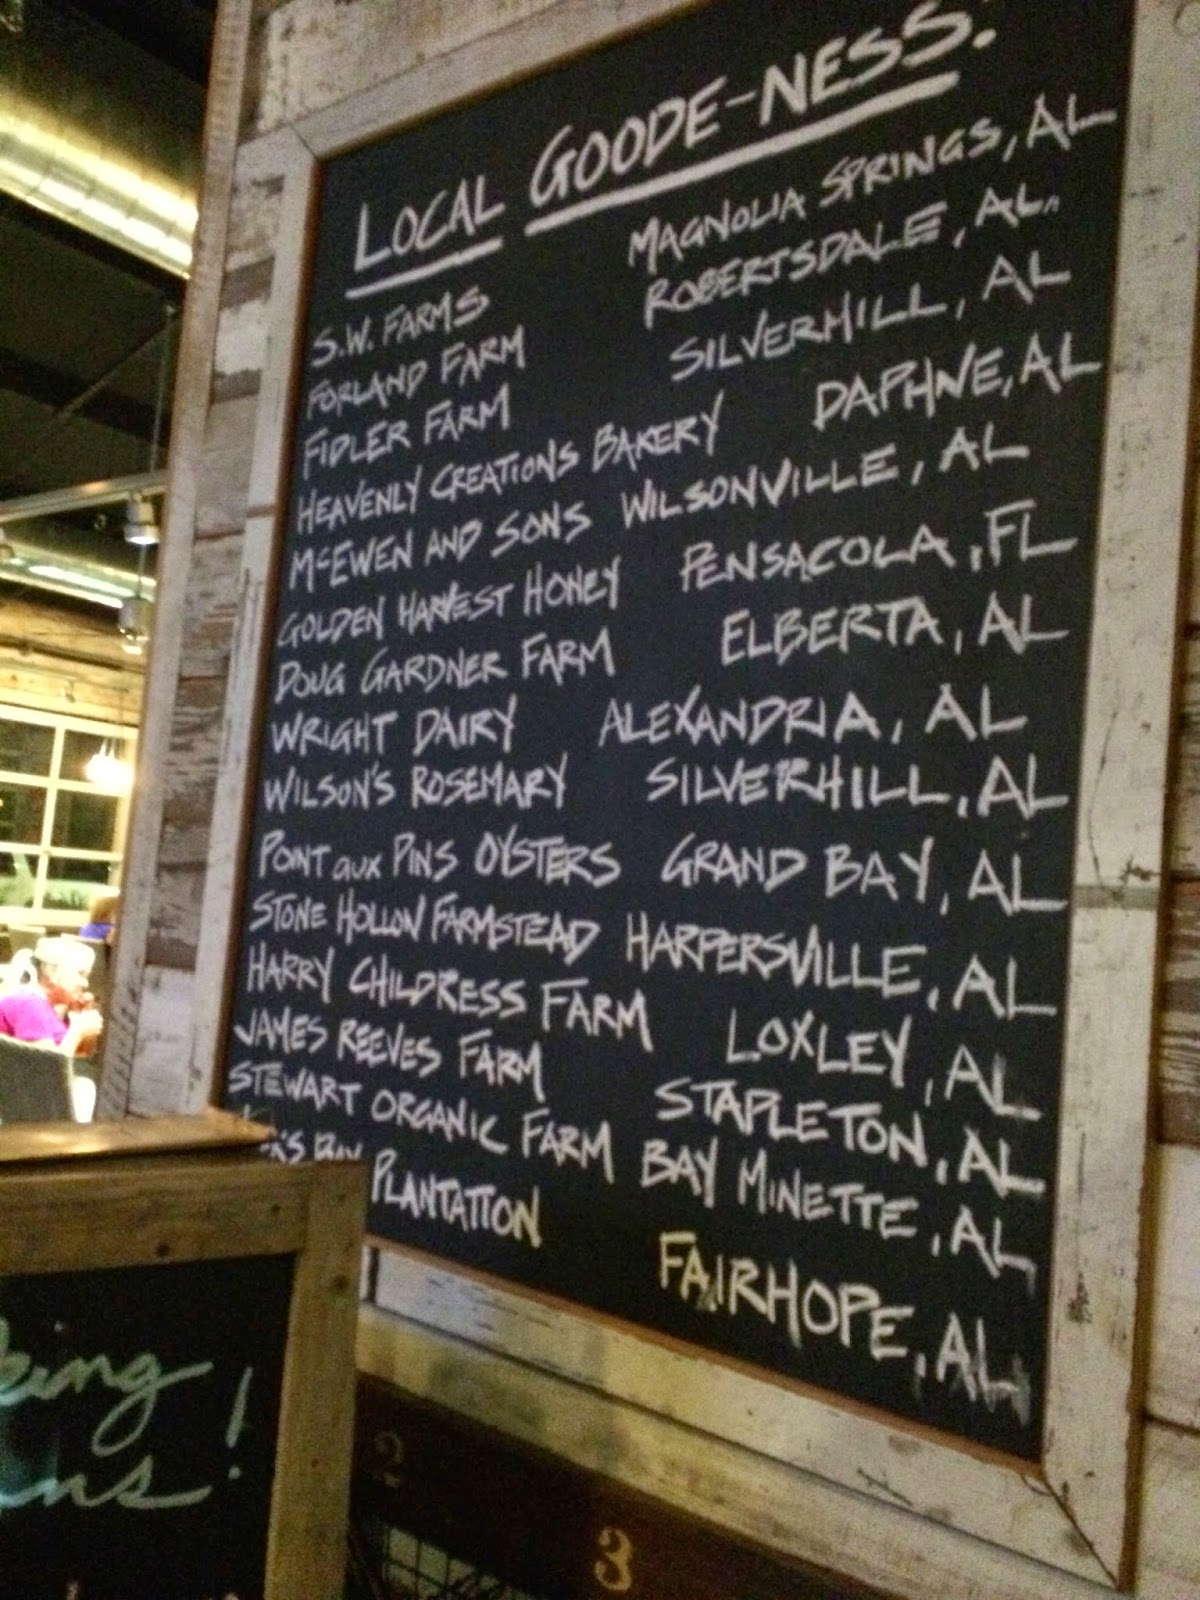 The list of local farms they source their ingredients from.